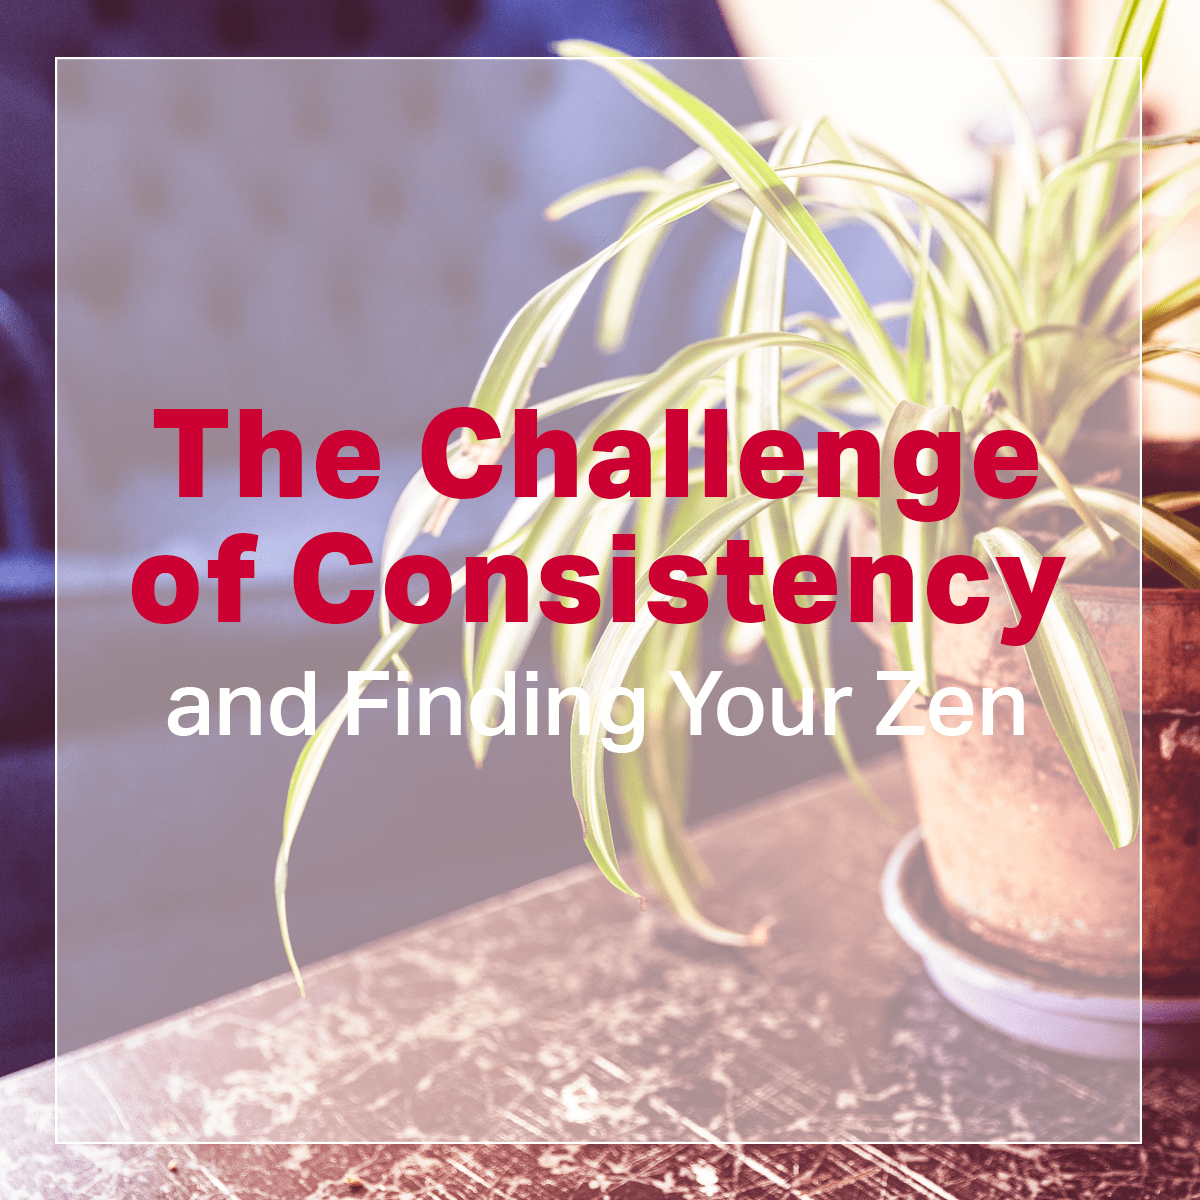 The Challenge of Consistency and Finding your Zen